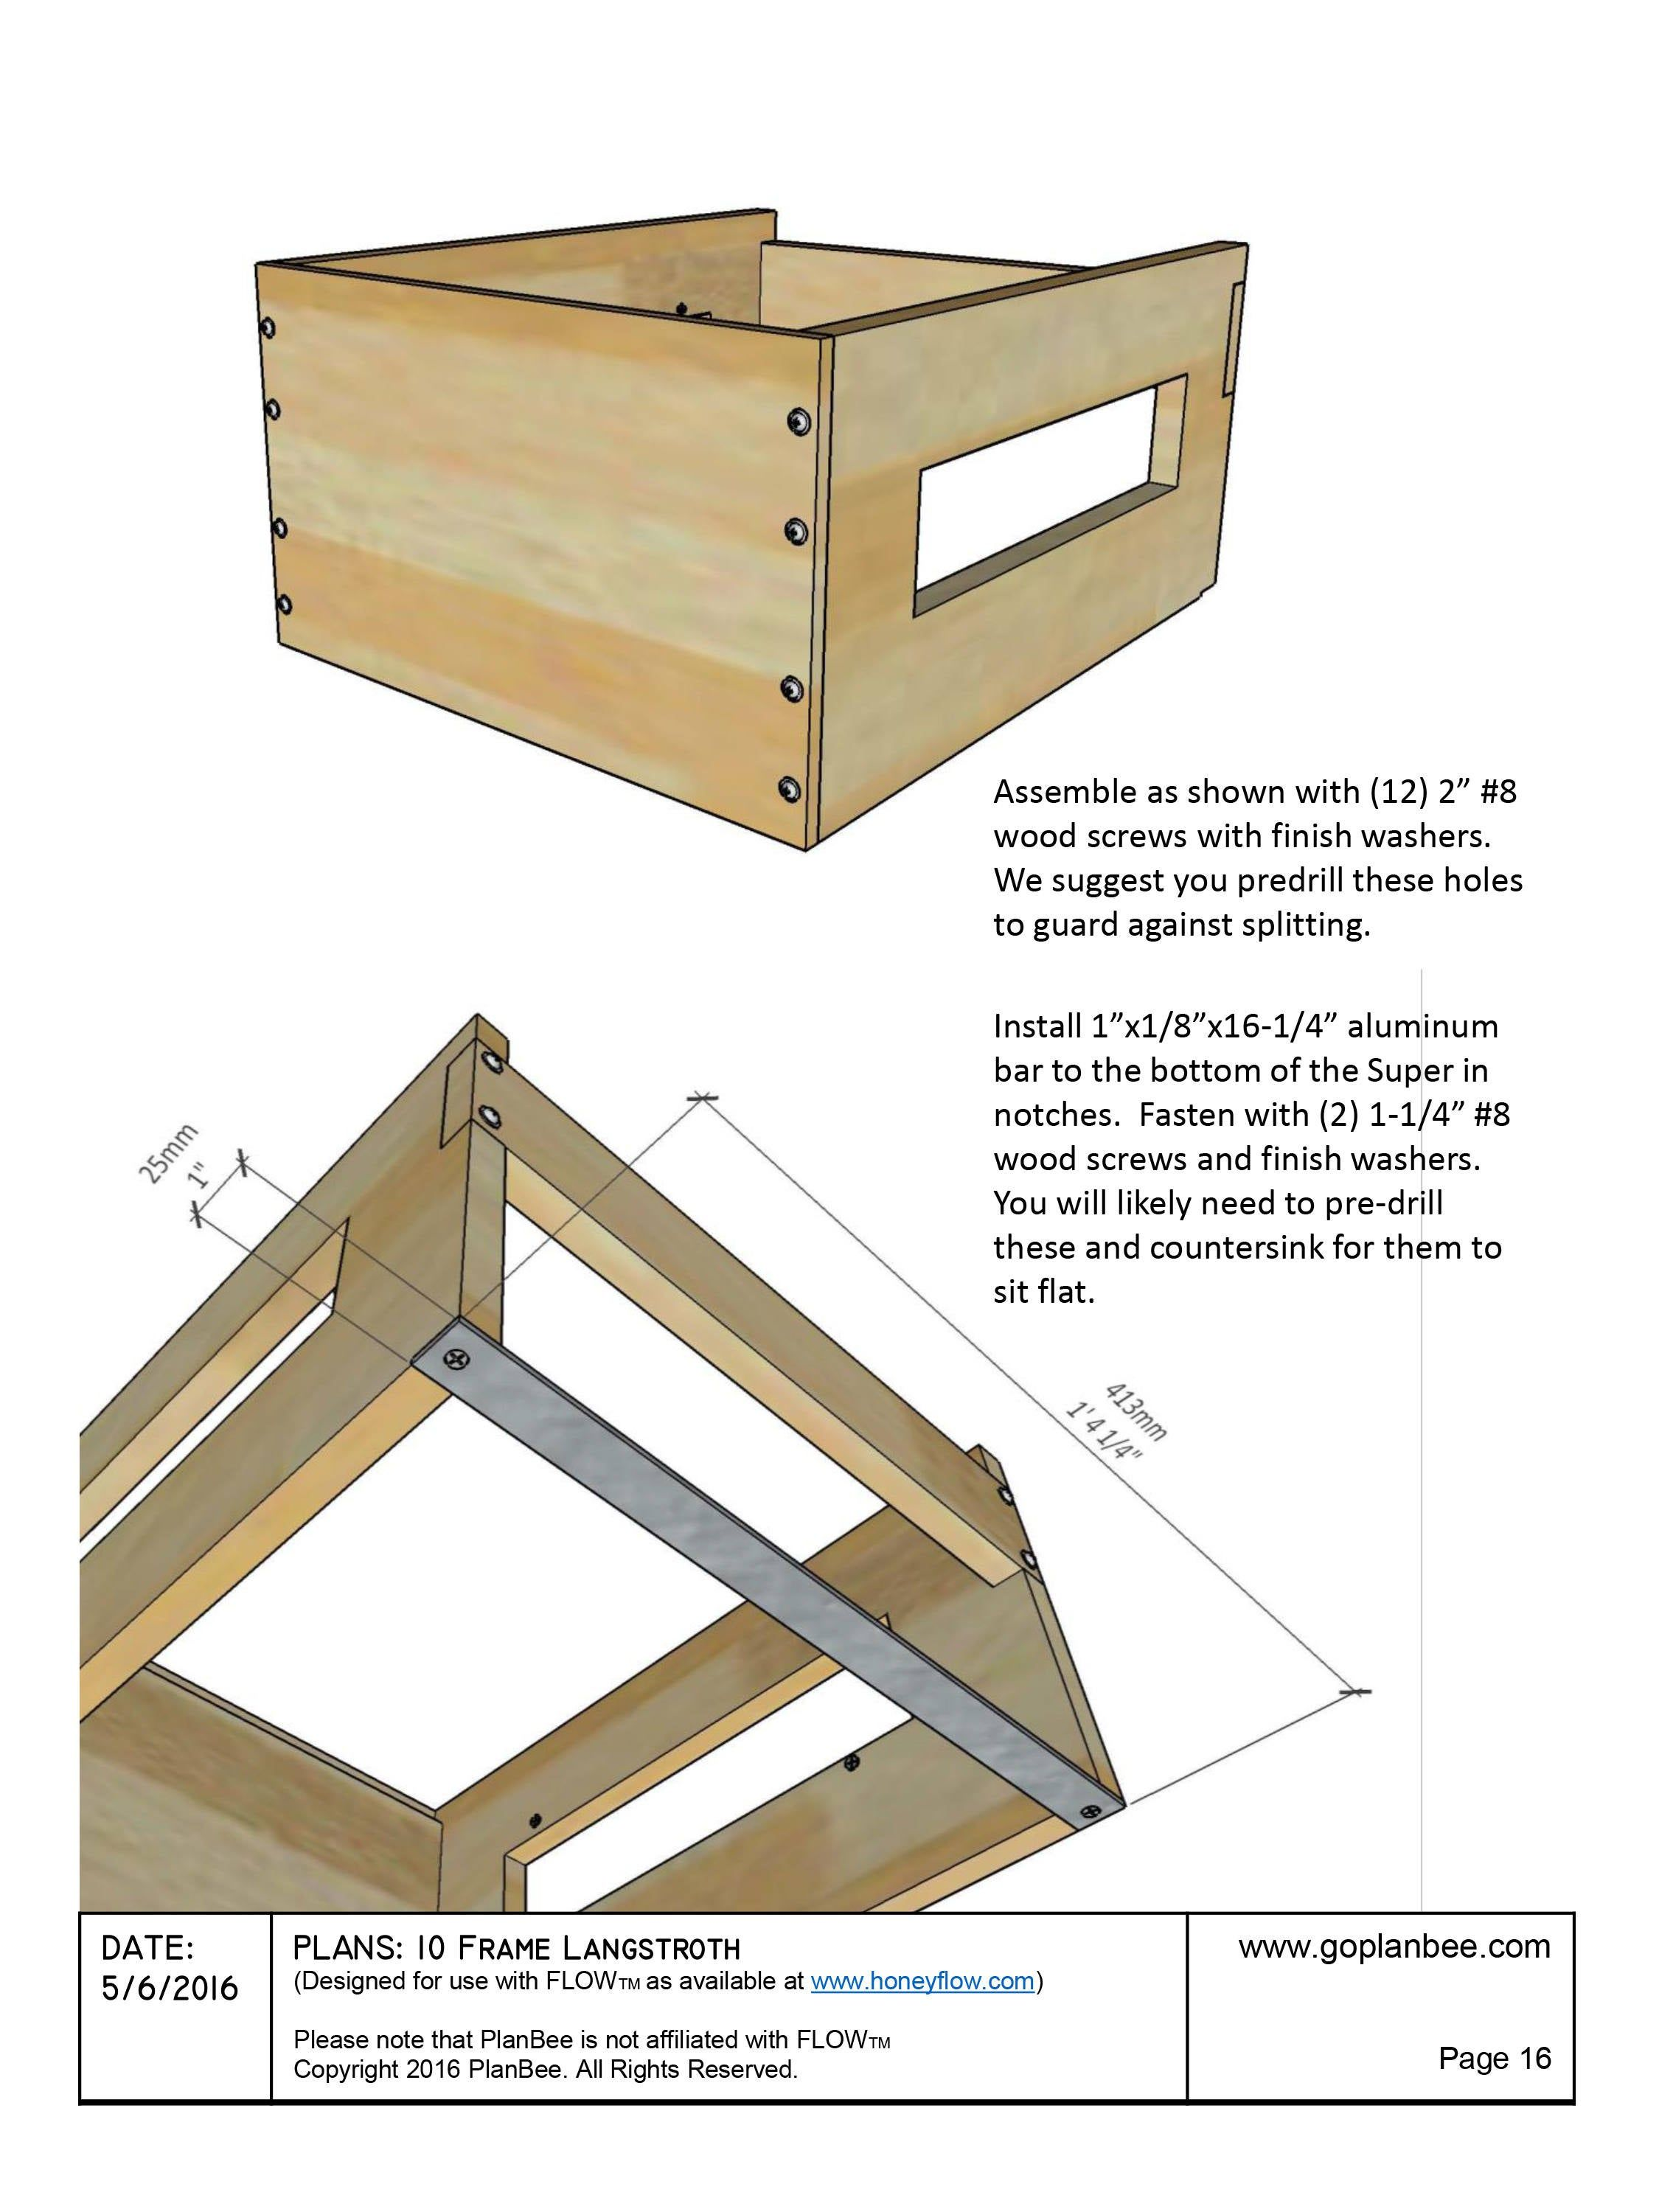 Diy Flow Beehive Box Plans Langstroth 10 Frame Beekeeping Etsy Flow Hive Flow Hive Plans Bee Hive